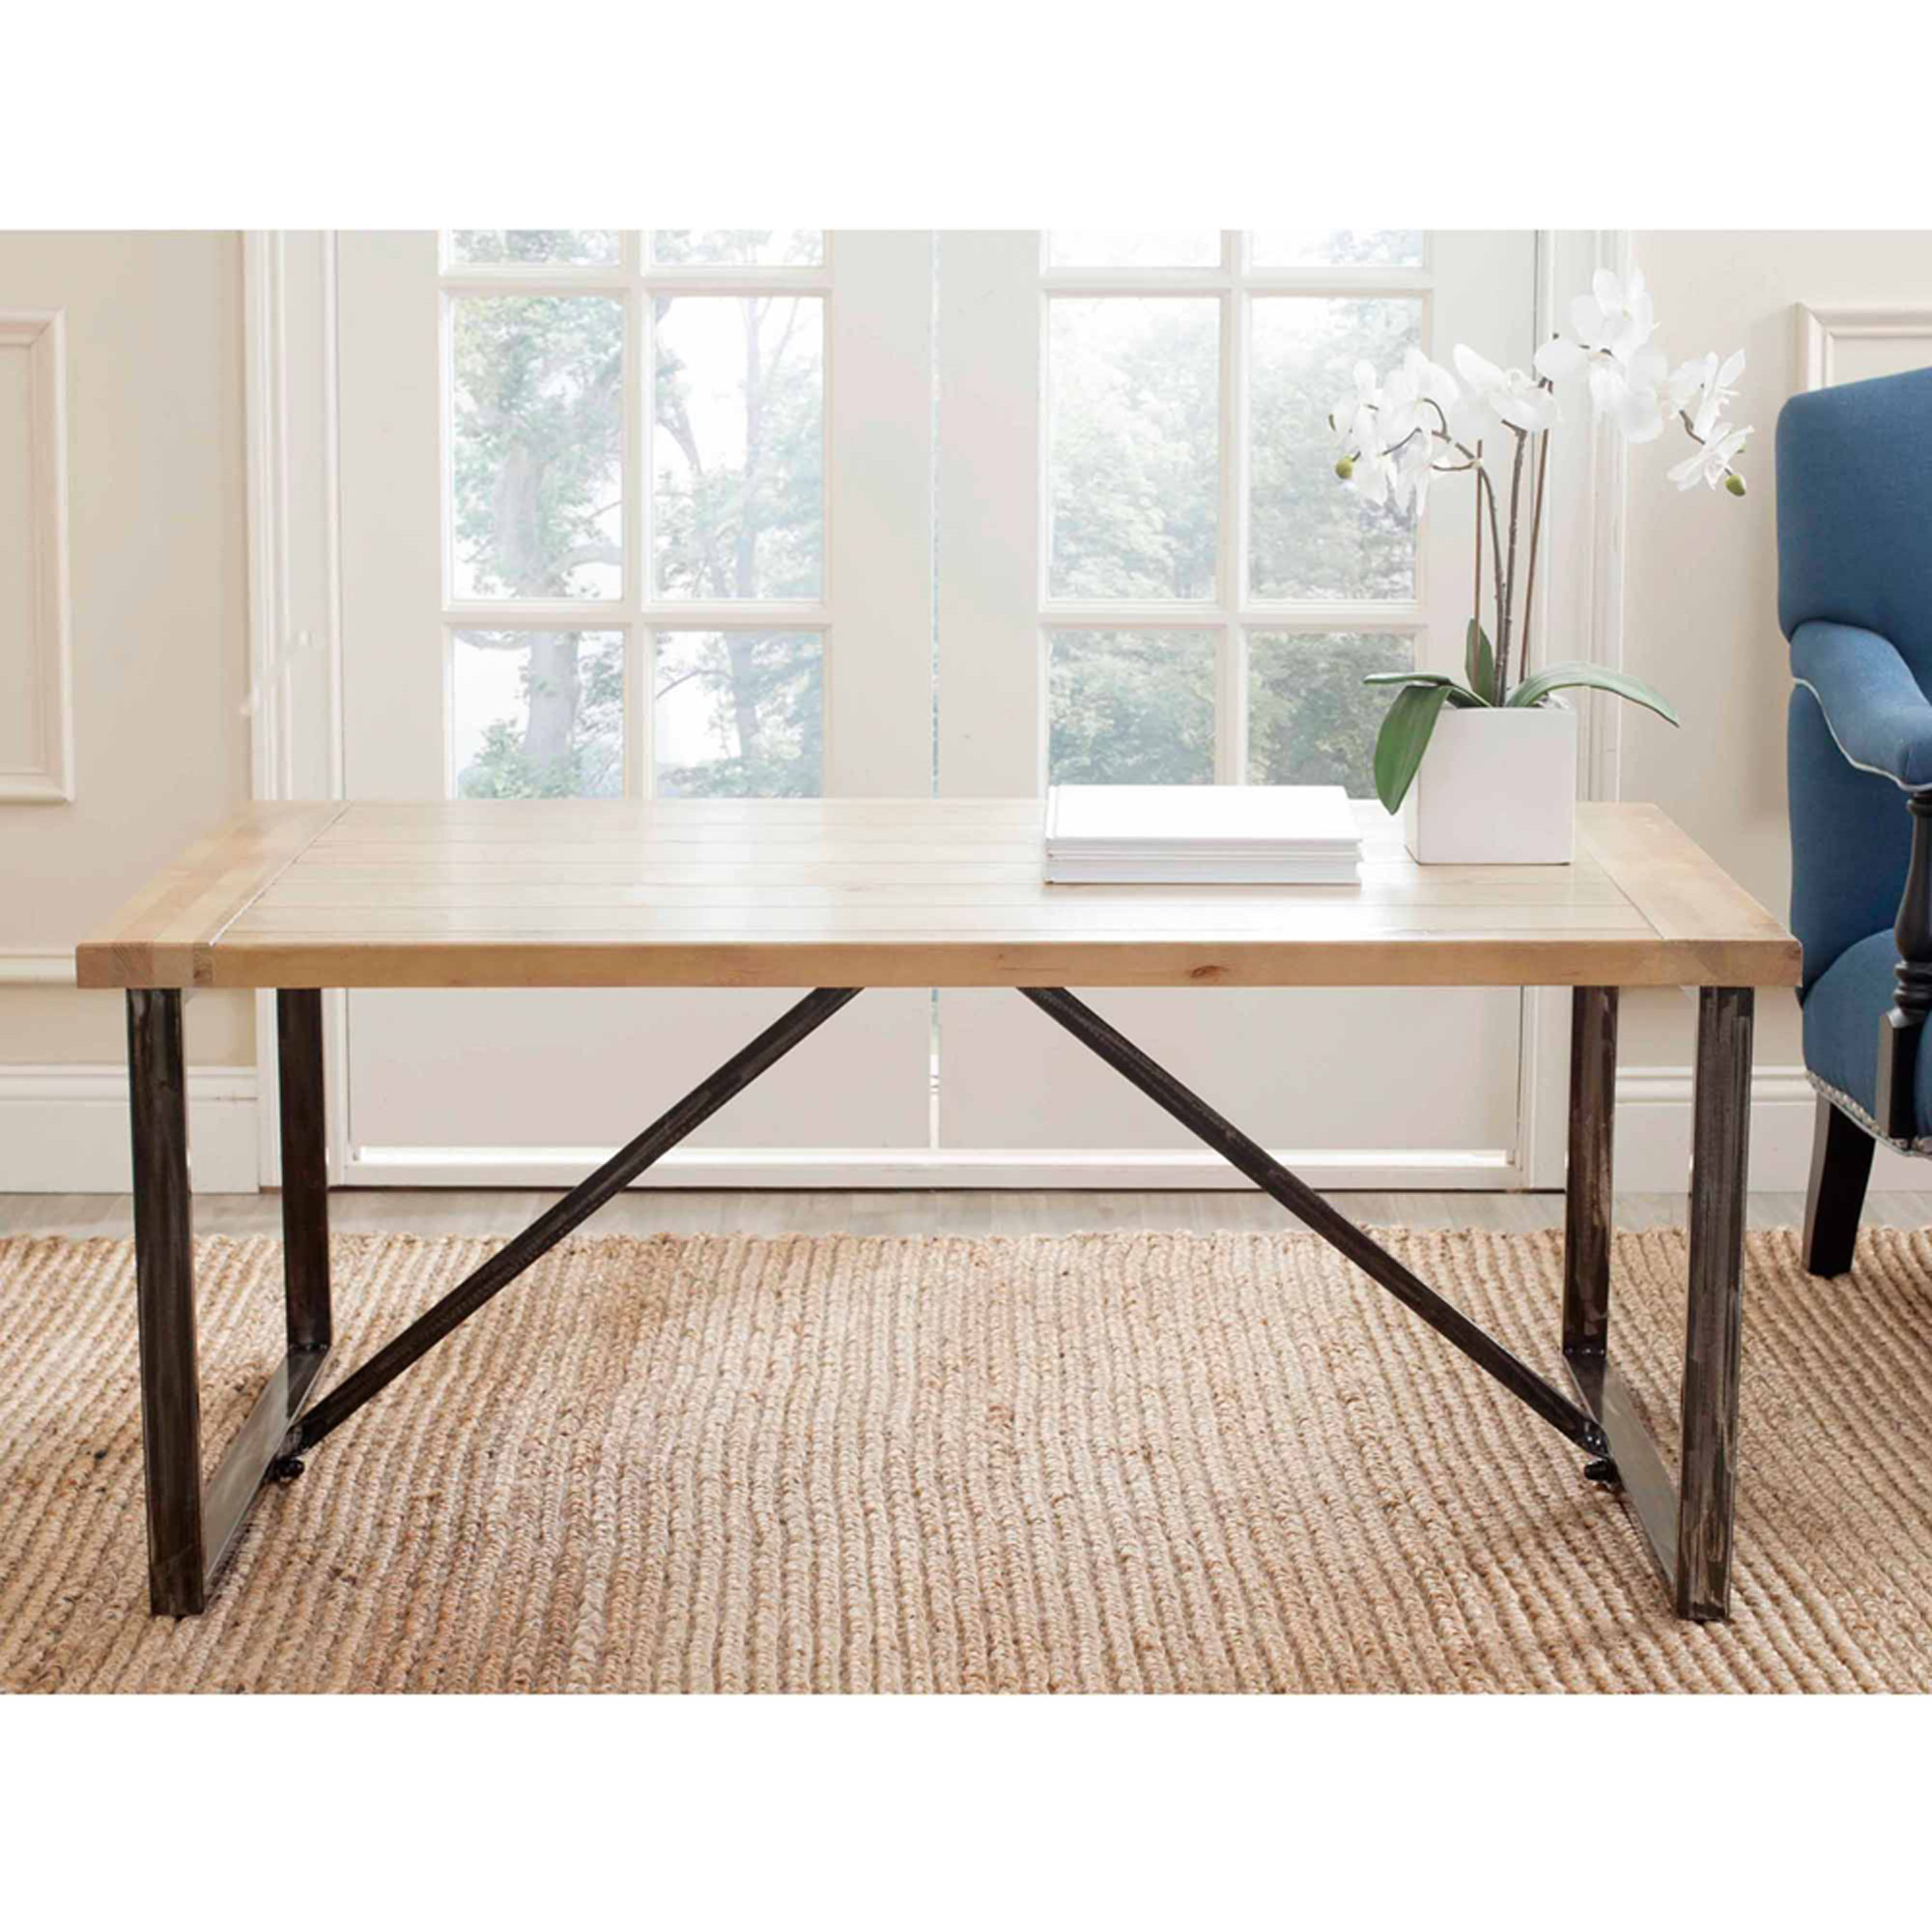 Safavieh Chase Coffee Table, Natural